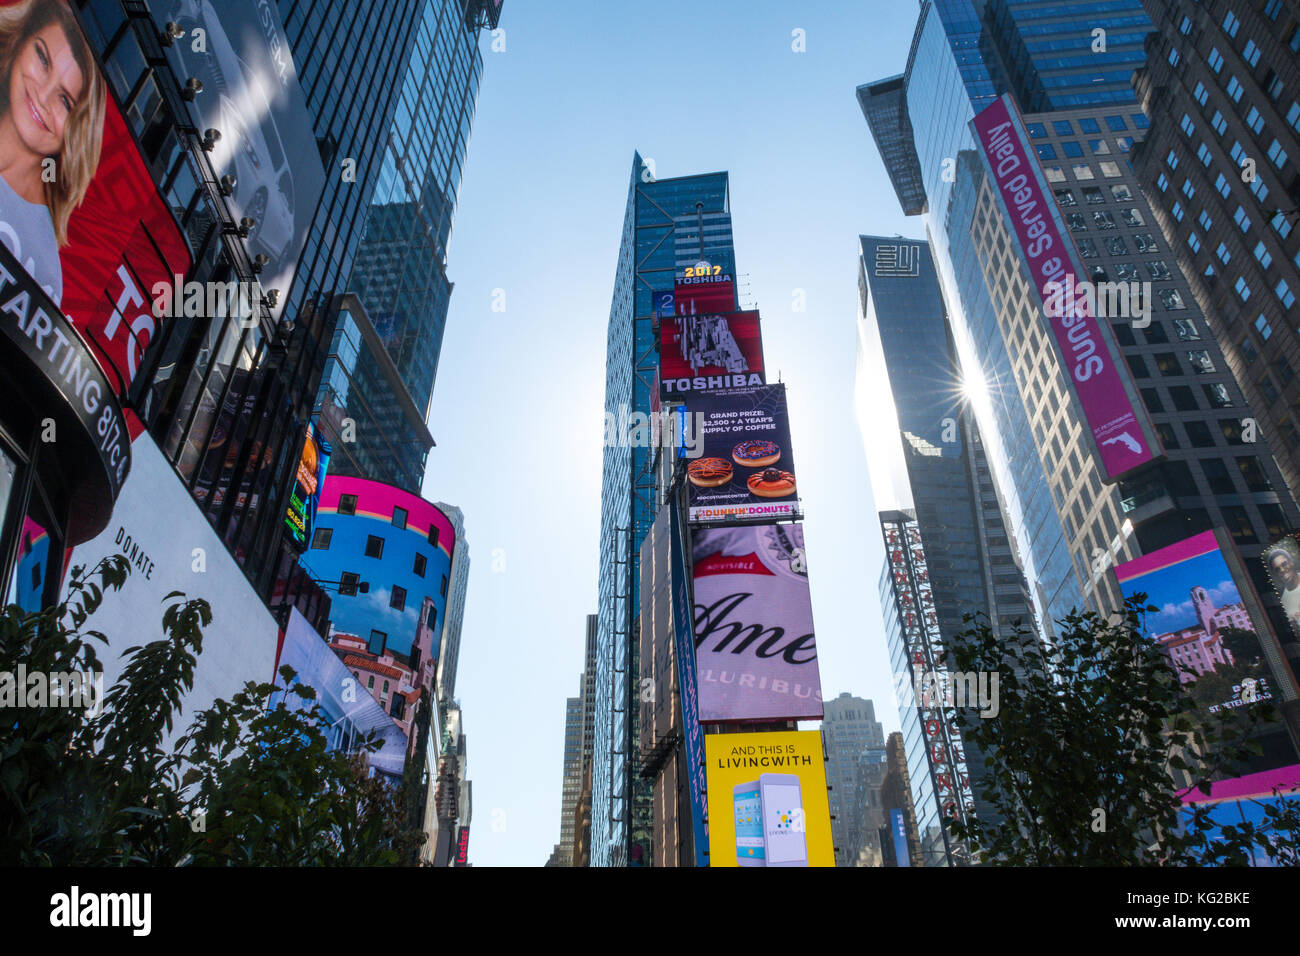 Colorful electronic advertising screens in Times Sq., New York City, USA - Stock Image